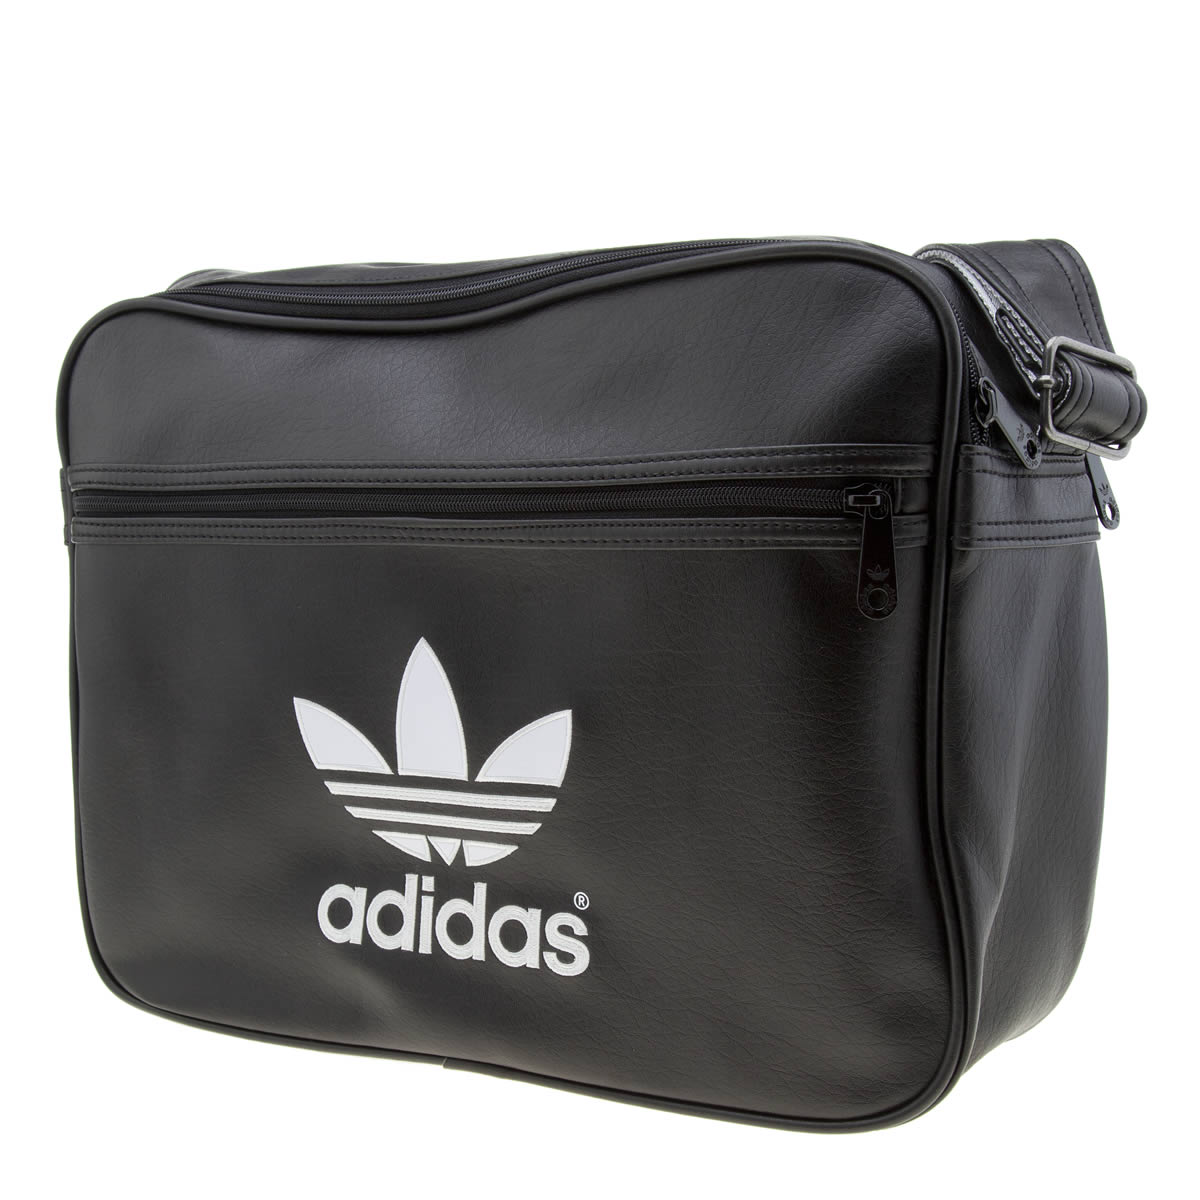 b9ecf7b4a92 adidas black and gold bag on sale > OFF66% Discounts